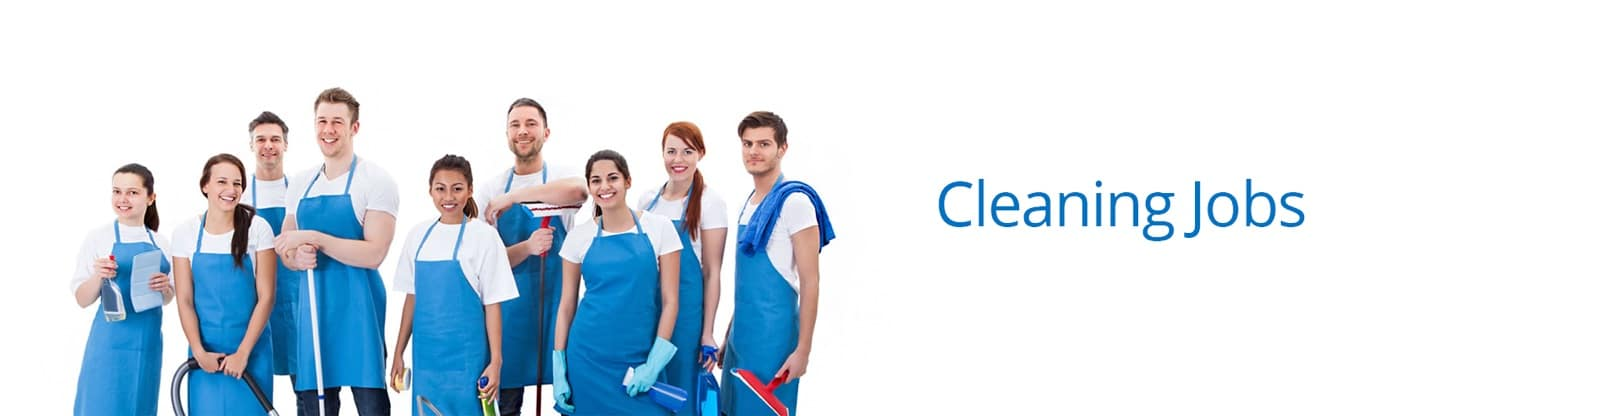 Cleaning jobs in sevenoaks, oxted and caterham